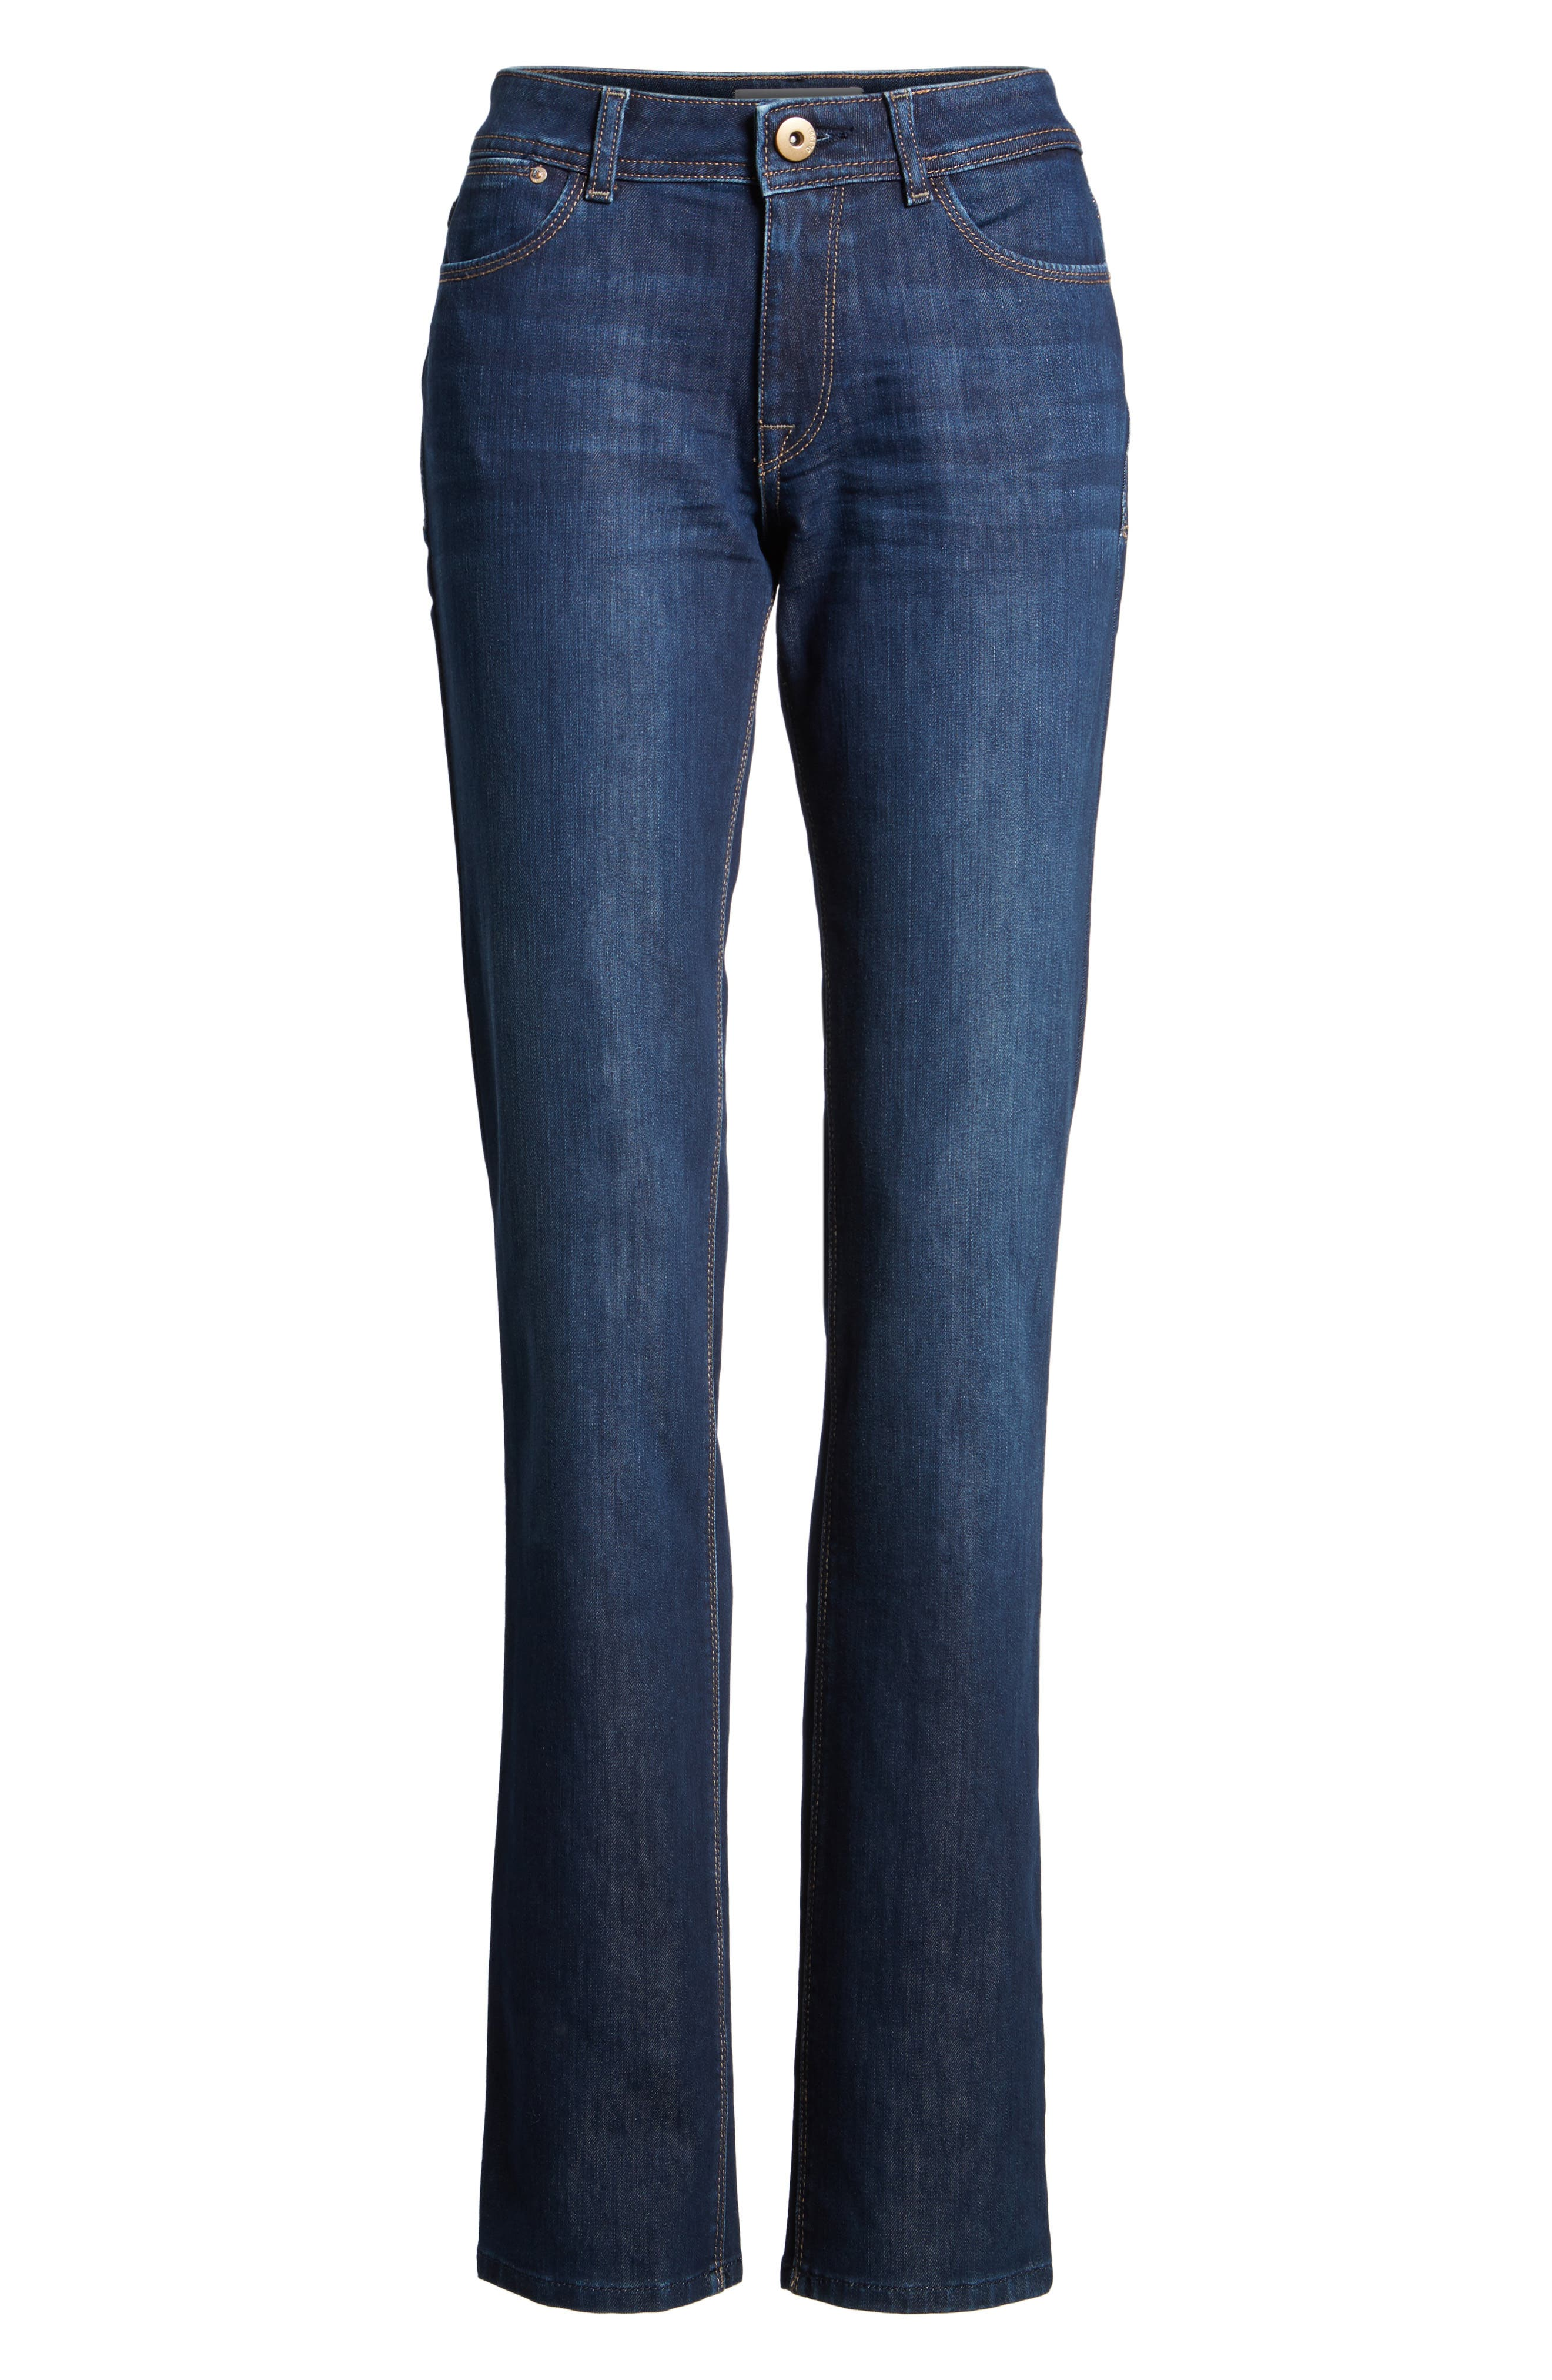 'Coco' Curvy Straight Jeans,                             Alternate thumbnail 7, color,                             SOLO